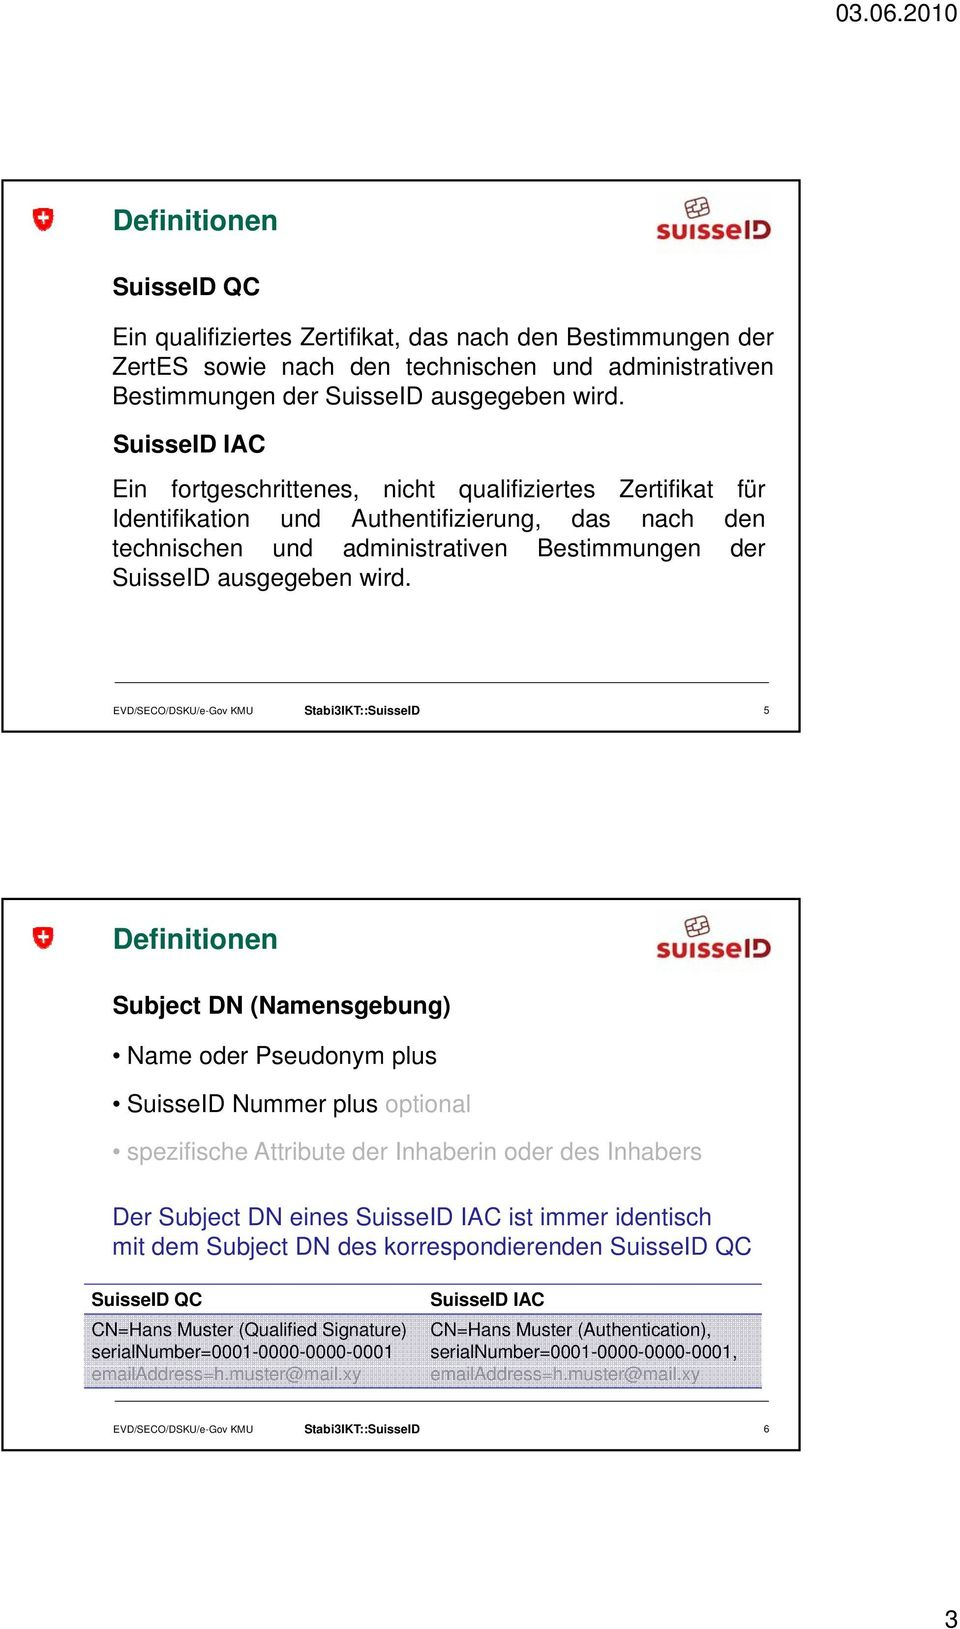 EVD/SECO/DSKU/e-Gov KMU Stabi3IKT::SuisseID 5 Subject DN (Namensgebung) Name oder Pseudonym plus SuisseID Nummer plus optional spezifische Attribute der Inhaberin oder des Inhabers Der Subject DN